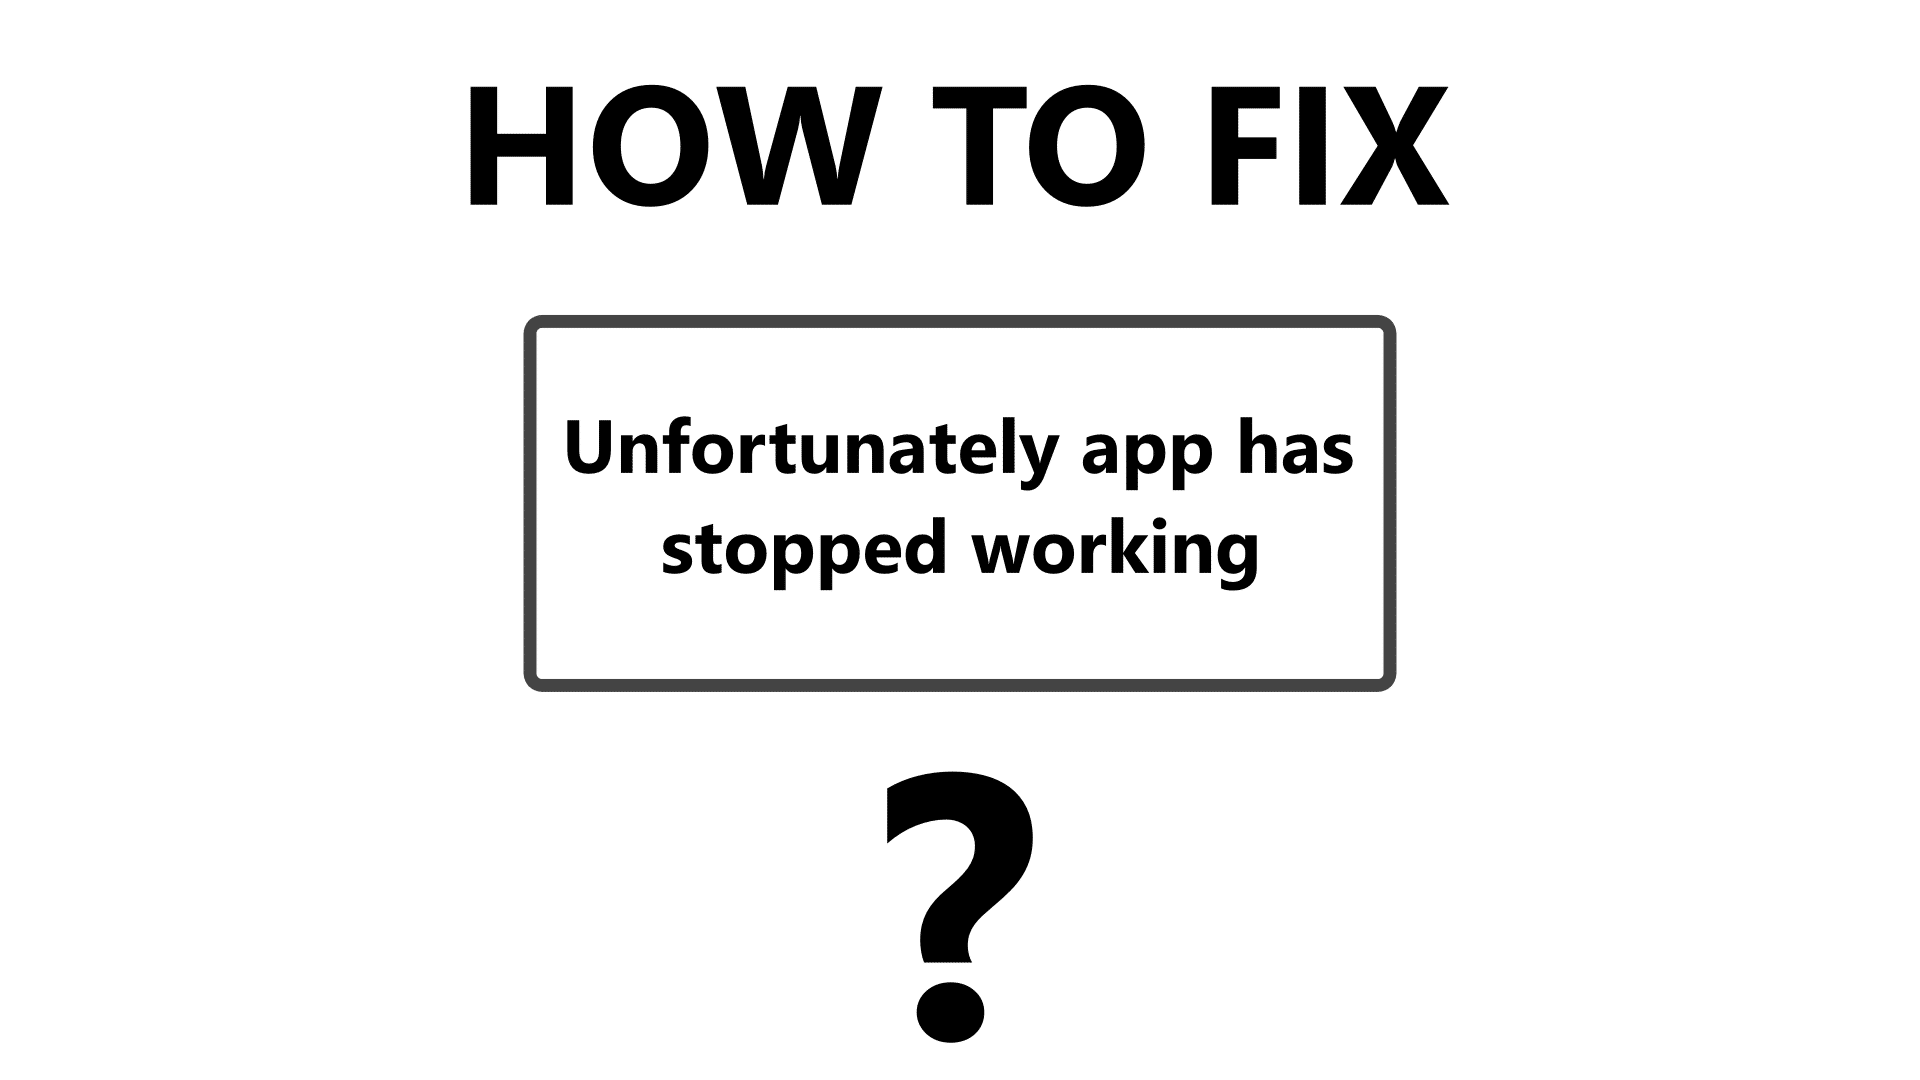 how to fix unfortunately app has stopped working